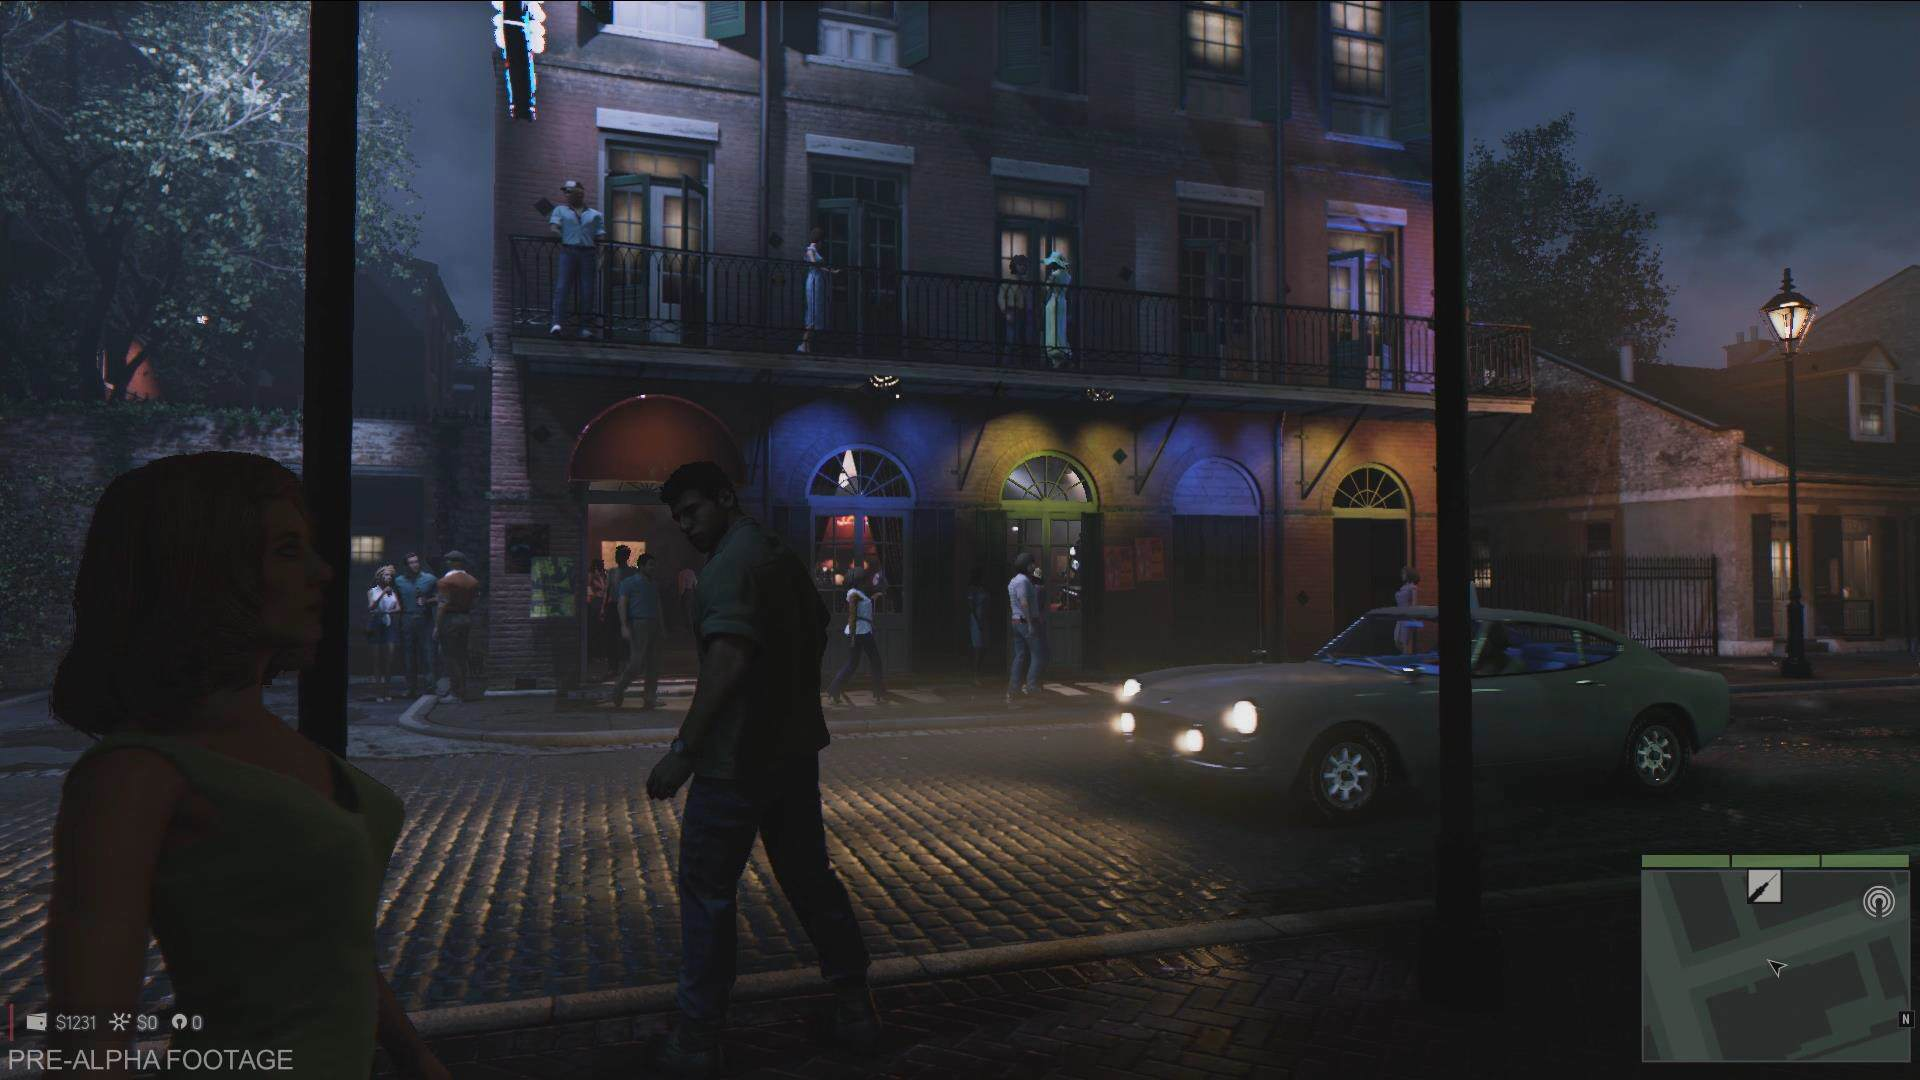 New Mafia 3 Screens Show Off The Games Impressive World 4 aSkvg7h